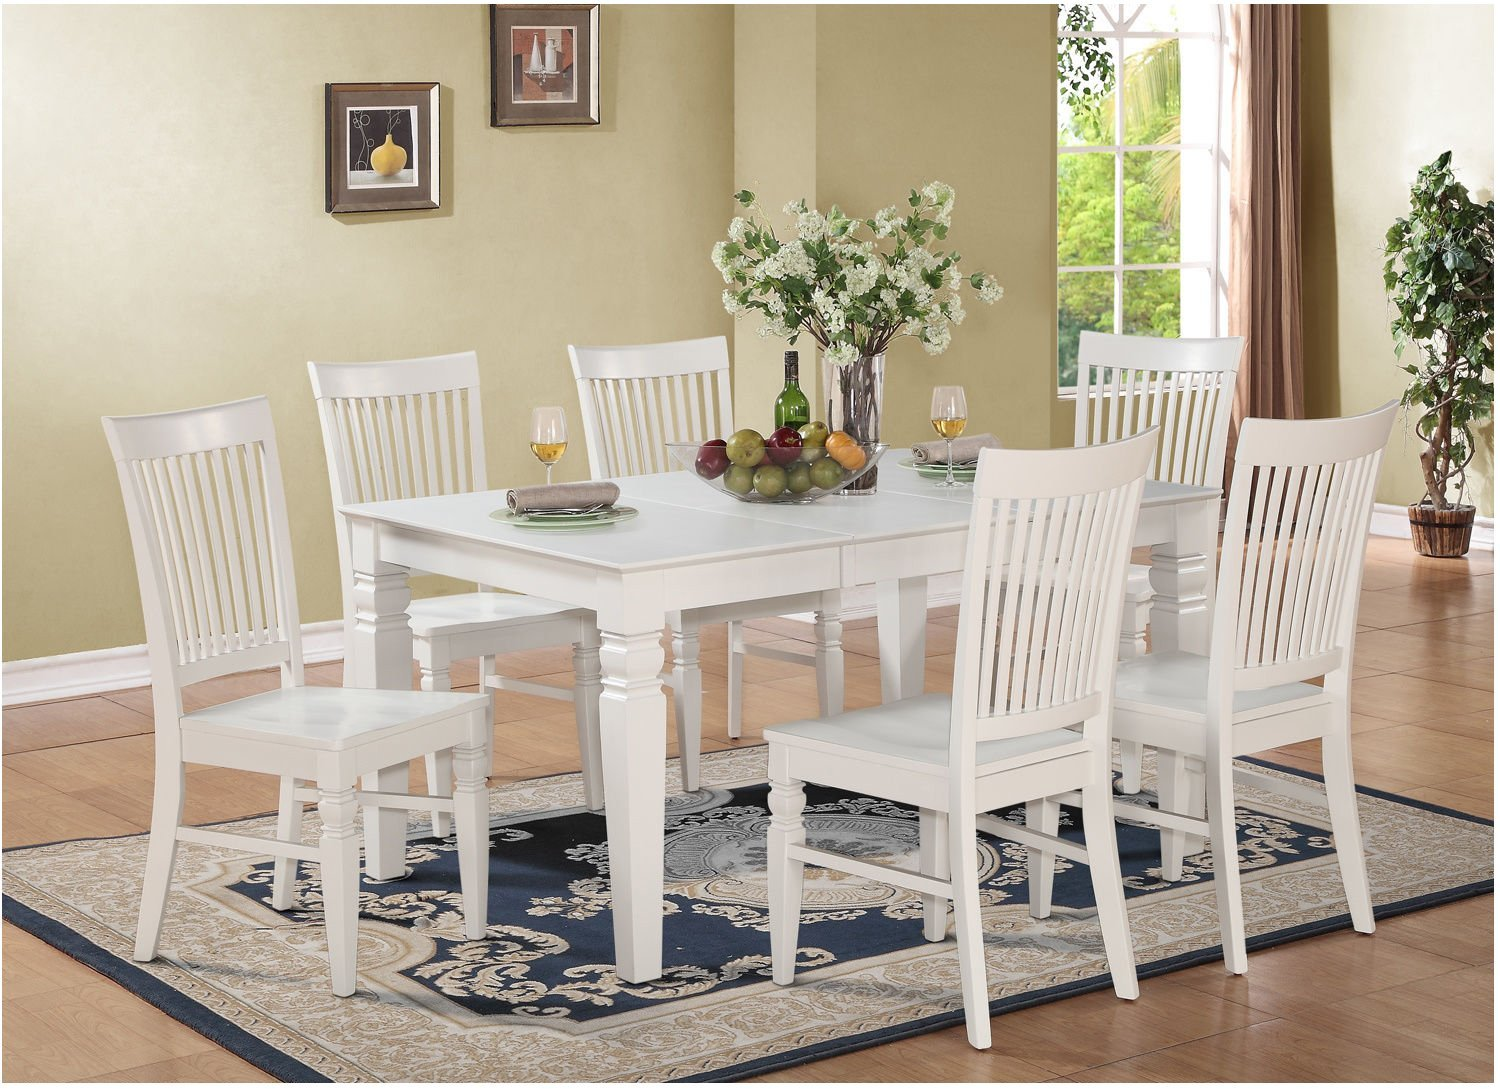 cheap dining table set 6 find dining table set 6 deals on line at